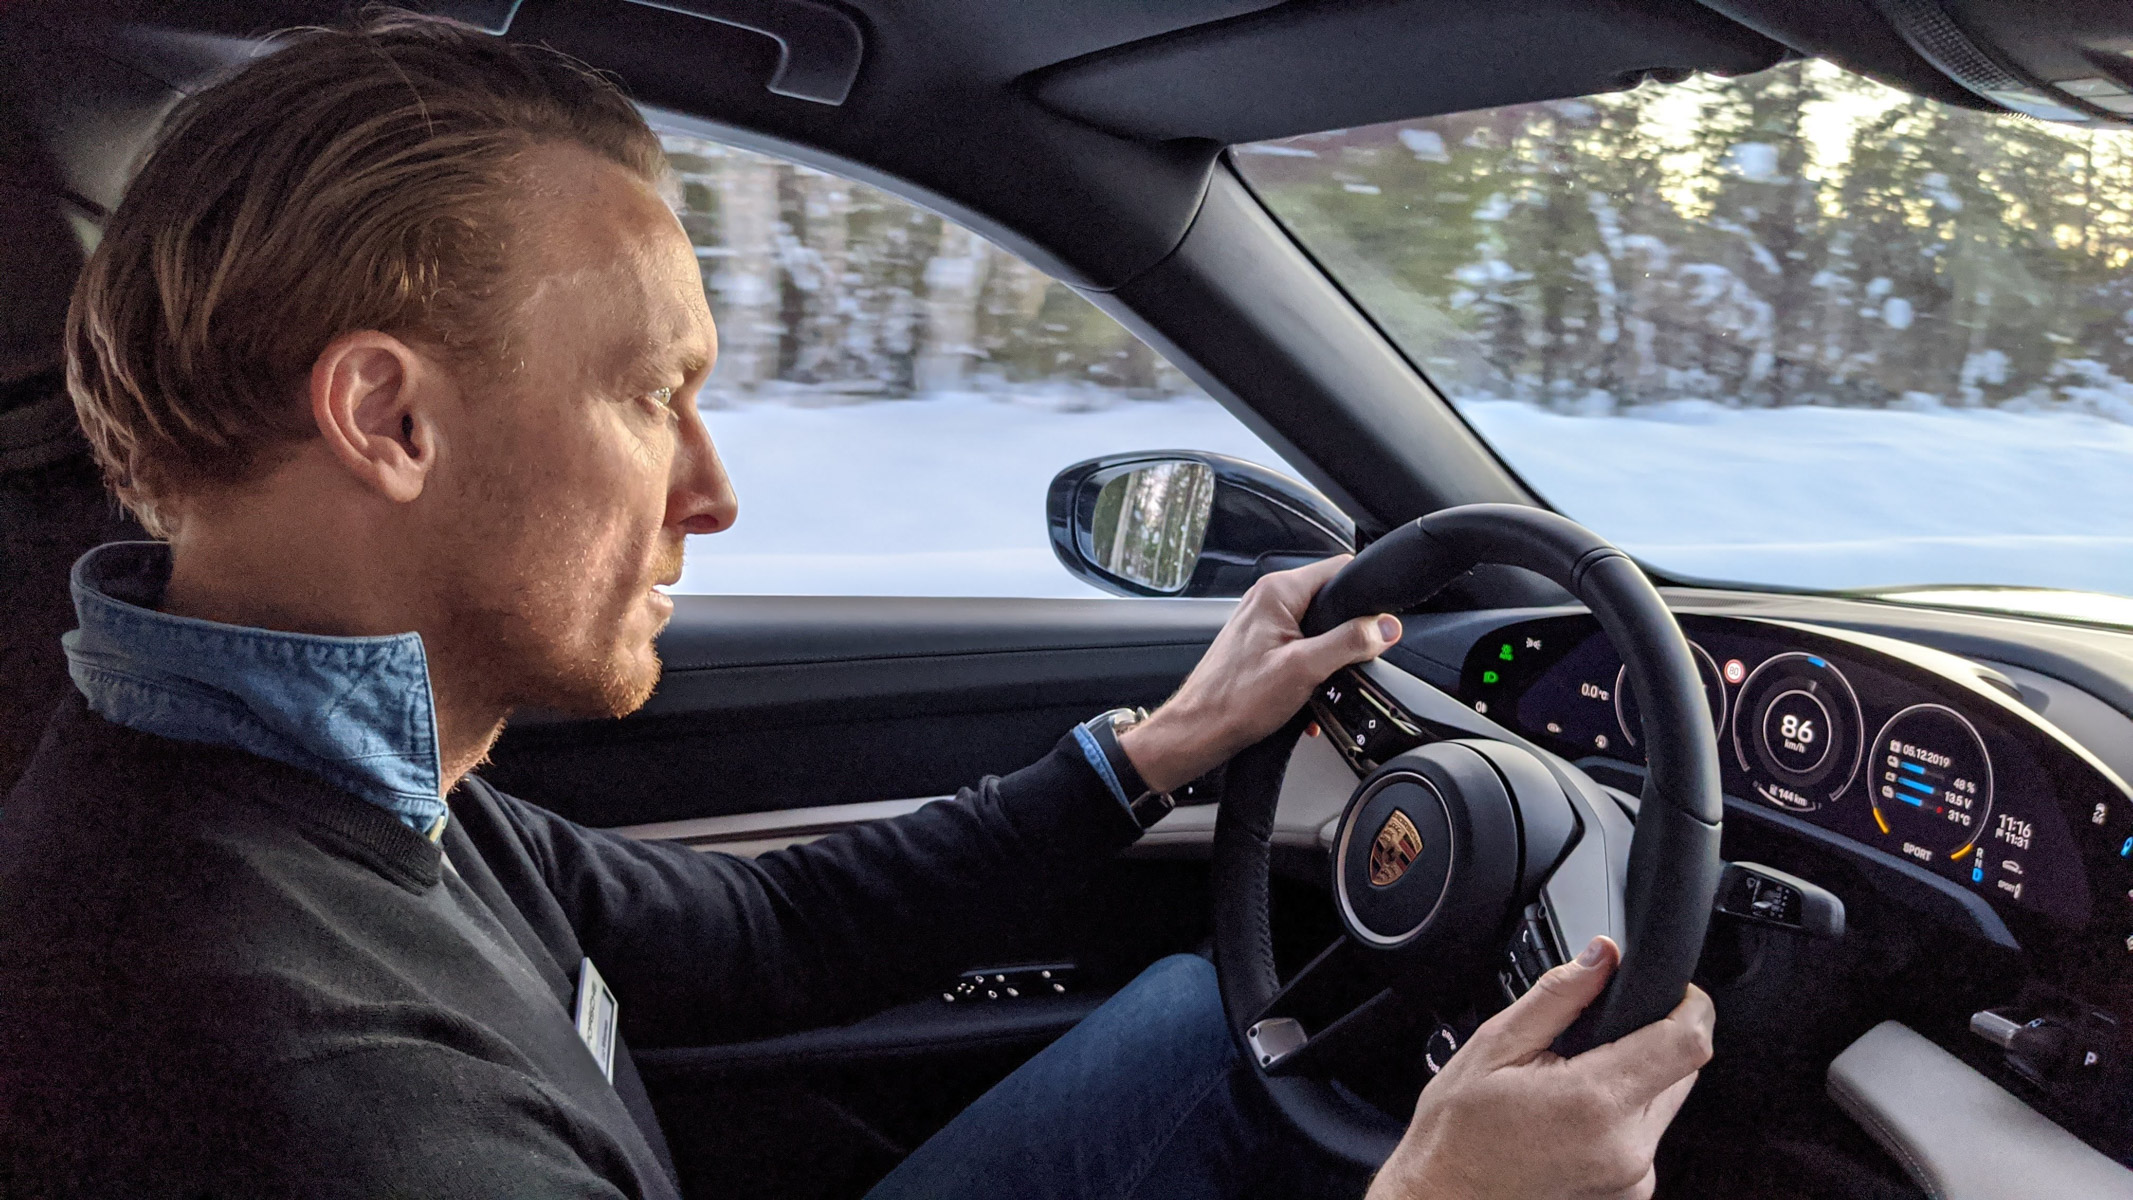 Porsche Taycan 4s Review 14 996 Reasons To Drive It